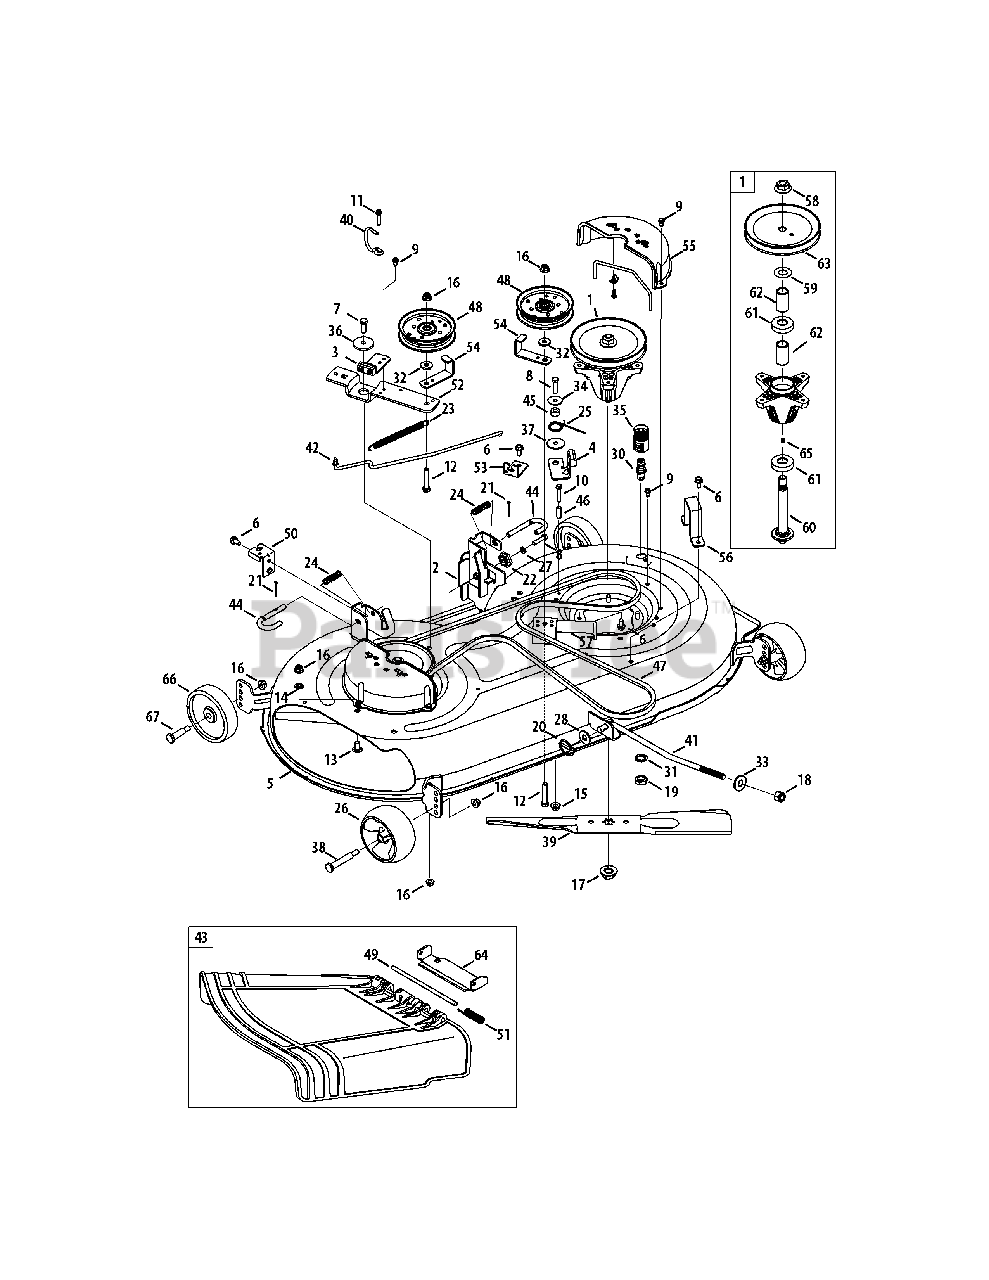 Cub Cadet Parts On The Mower Deck 42